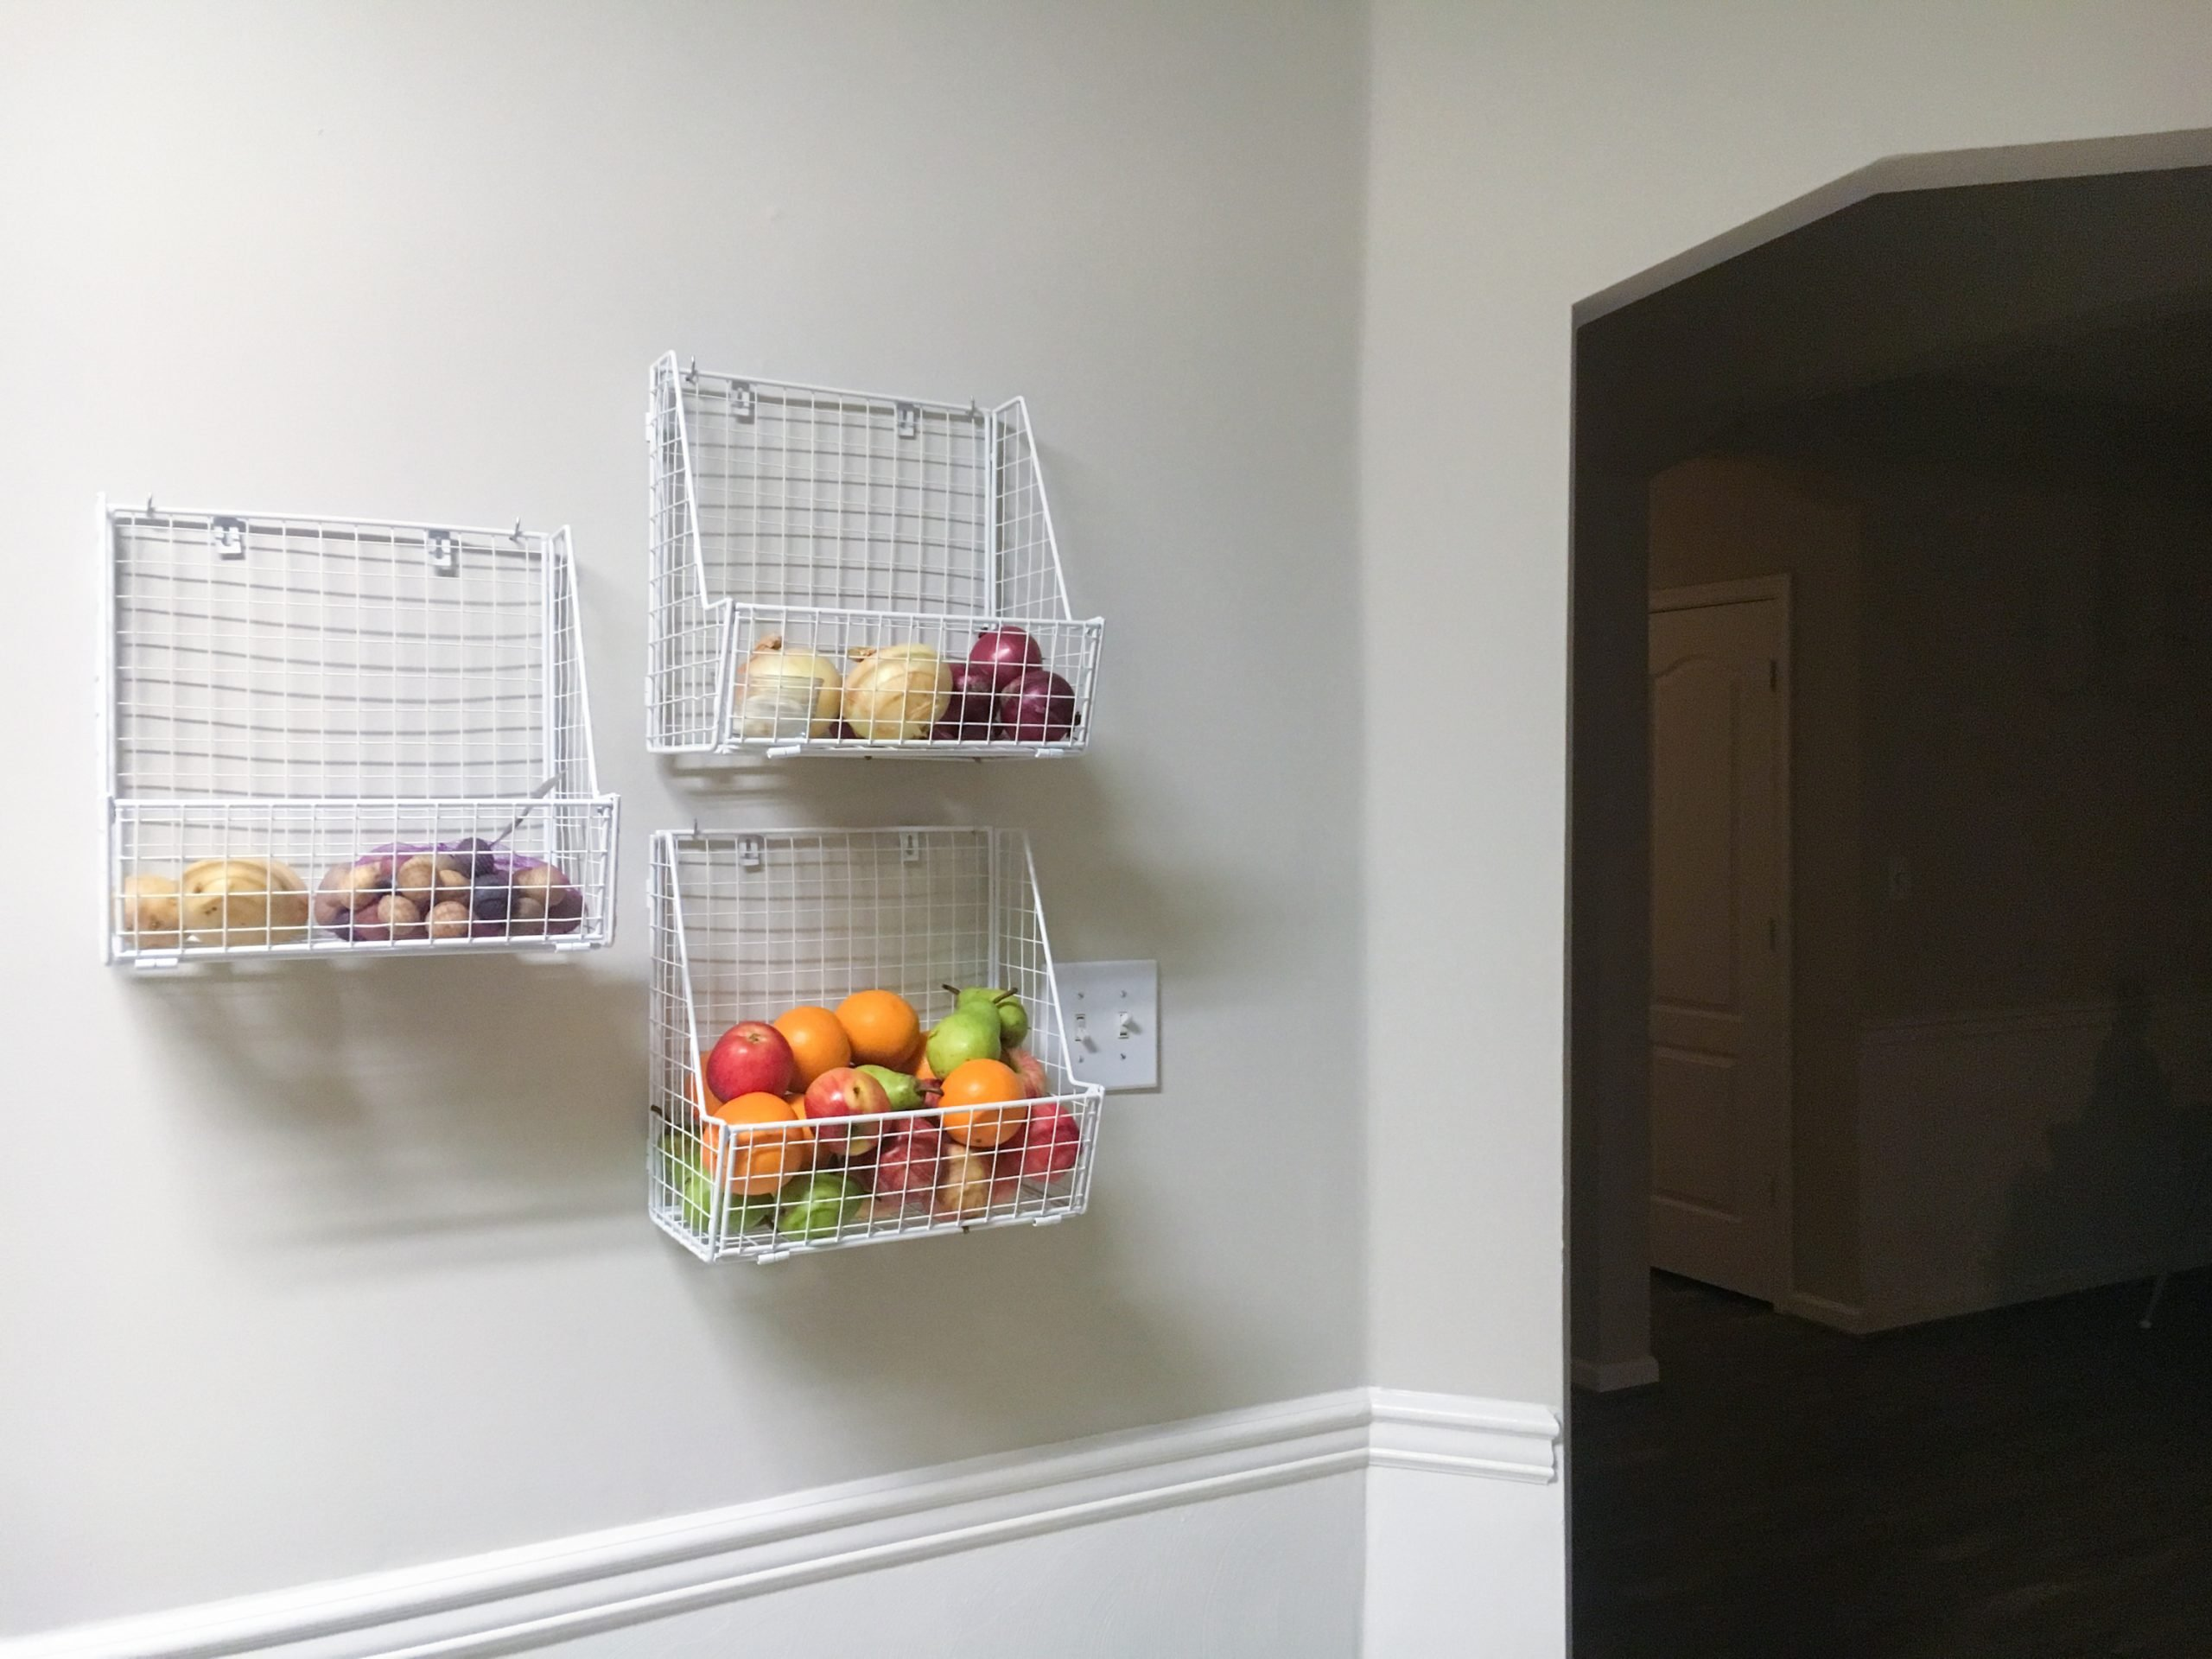 fruit baskets mounted on the wall